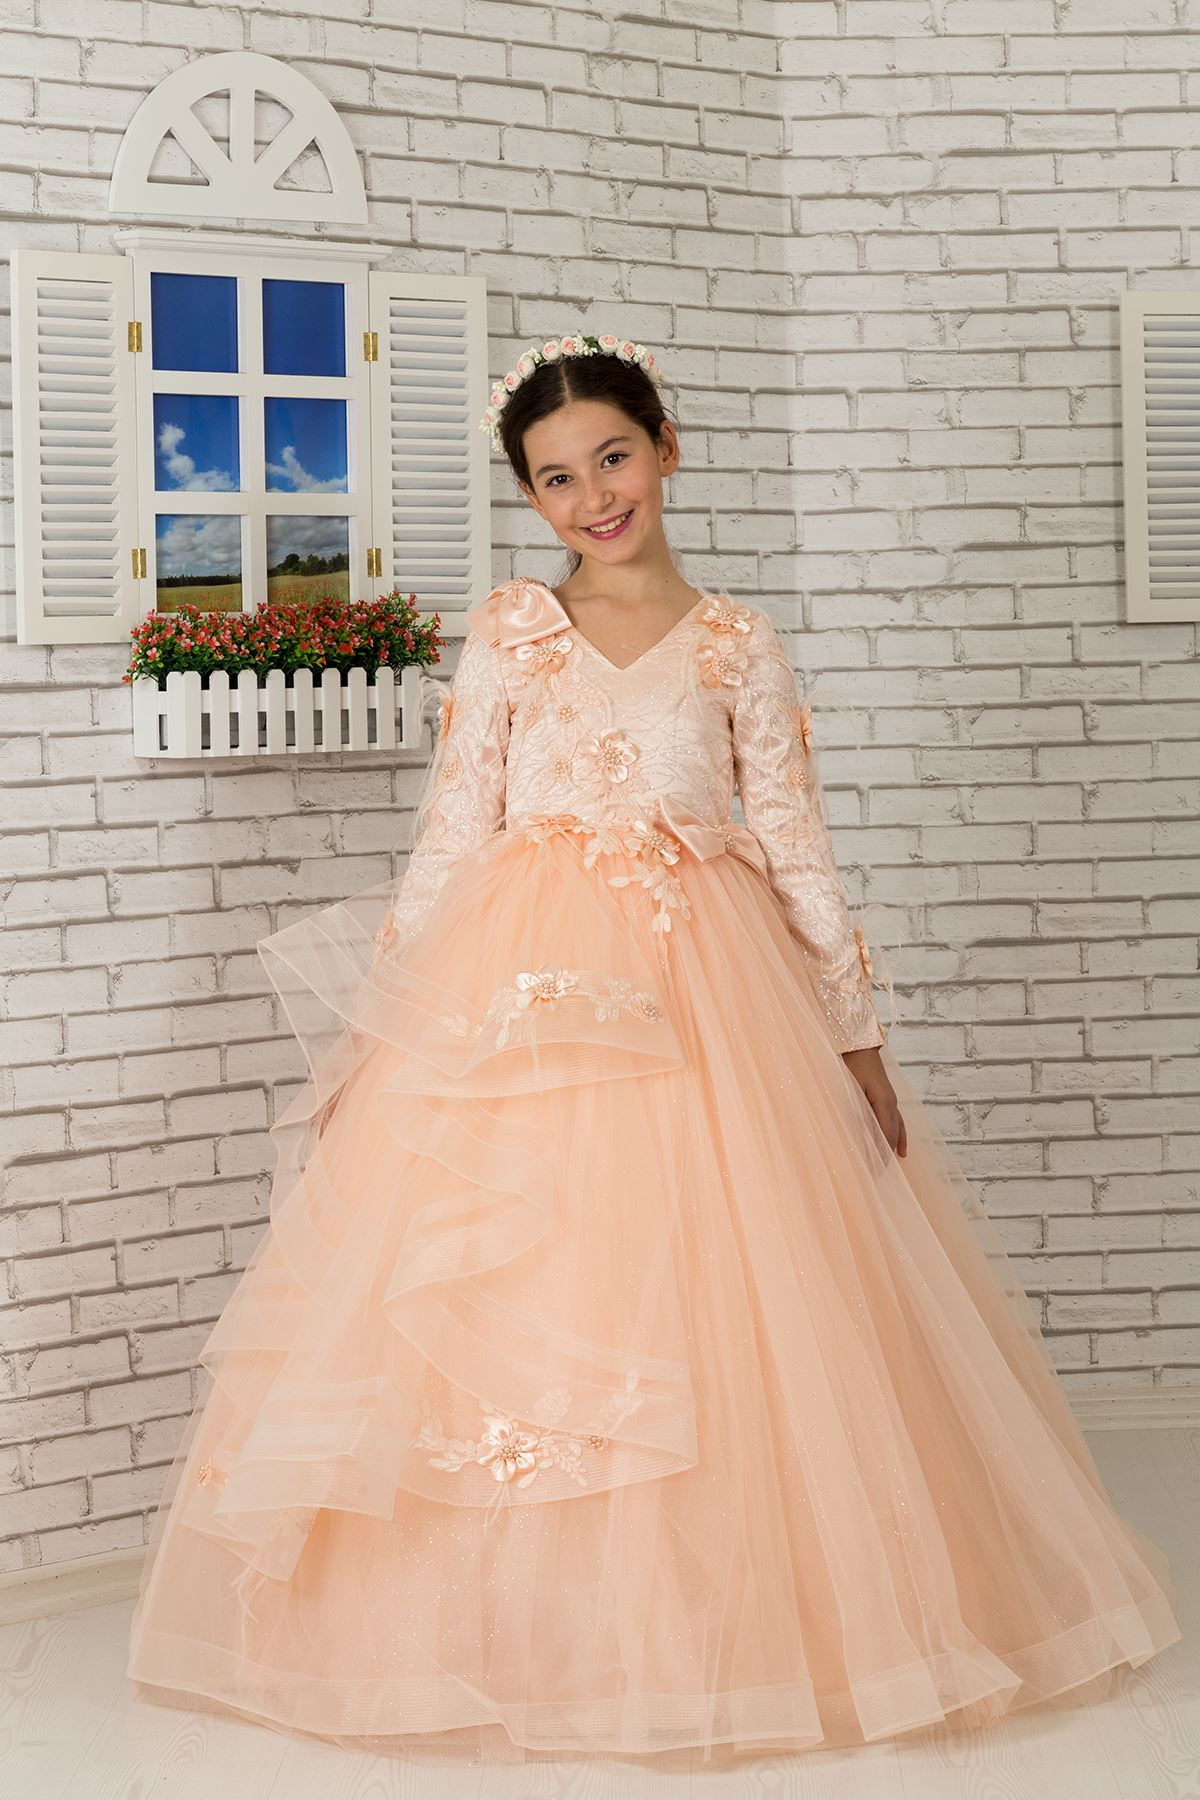 Long Sleeve, Shoulder Detail Fluffy Girl's Evening Dress 605 Salmon